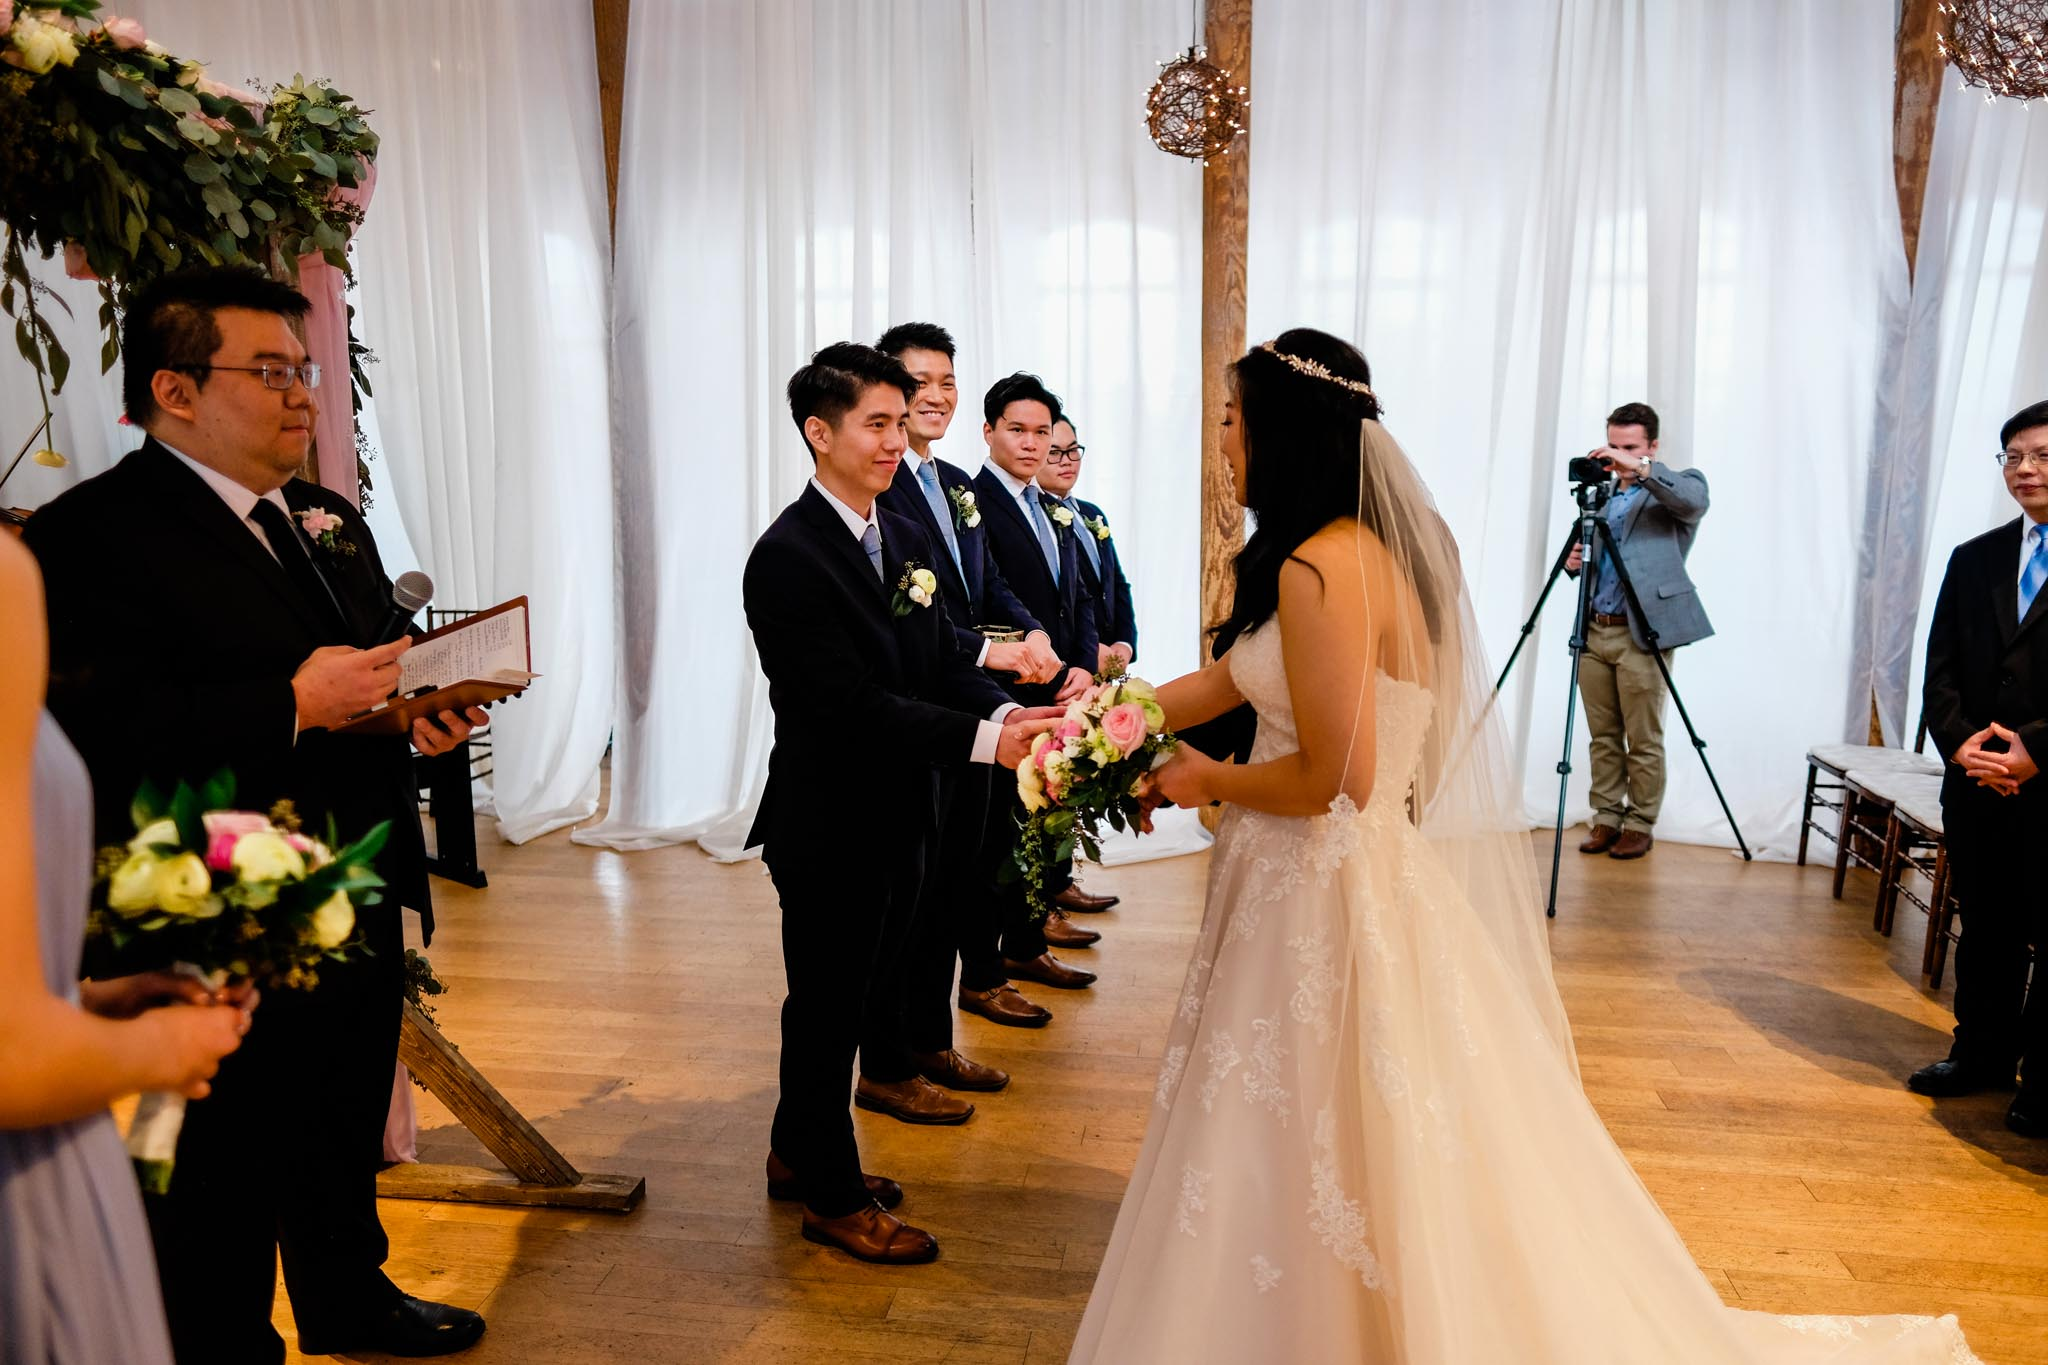 Wedding Ceremony at The Cotton Room | Durham Wedding Photographer | By G. Lin Photography